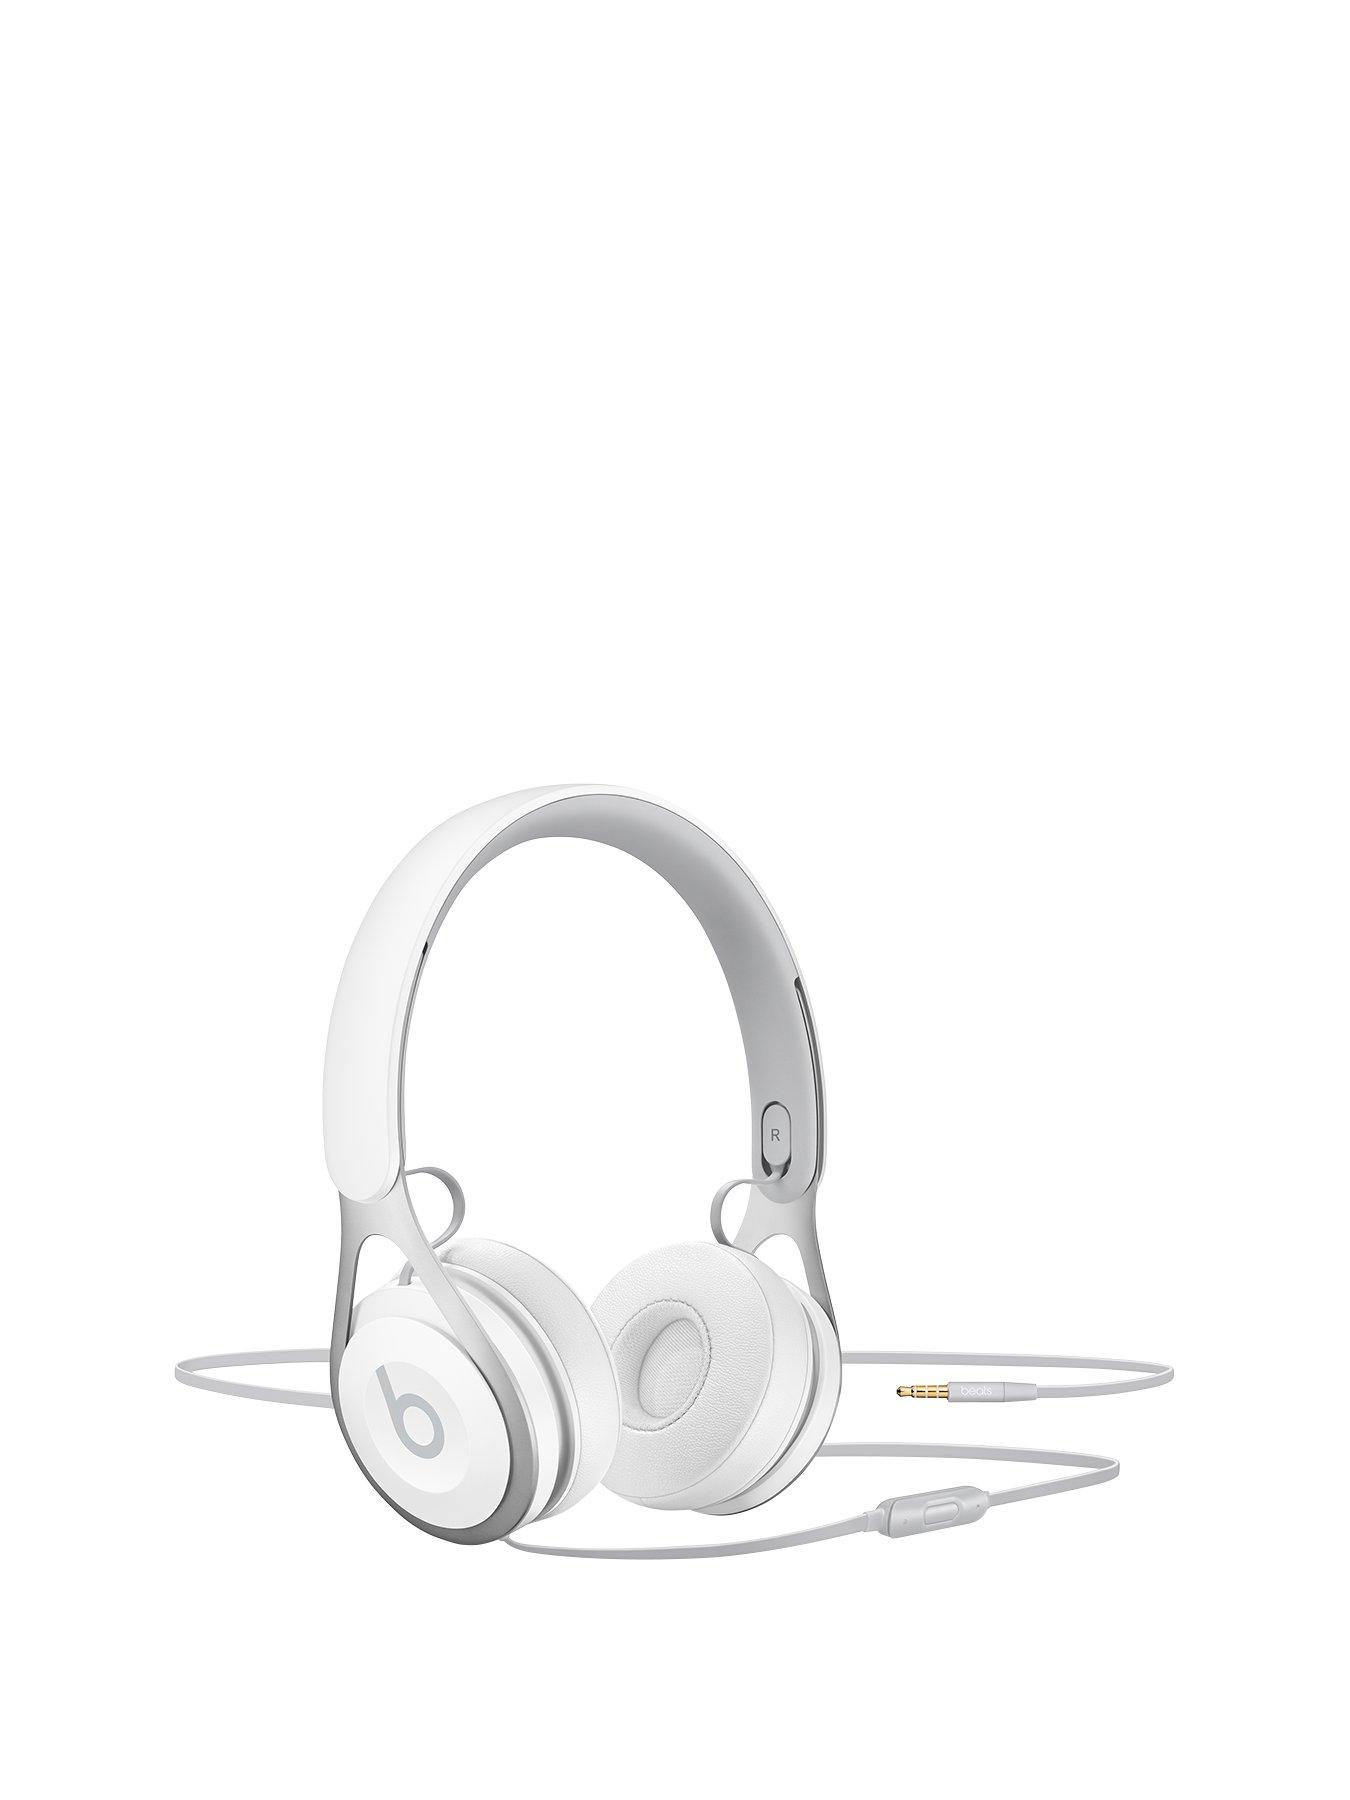 1350x1800 White Beats By Dr Dre Www.very.co.uk